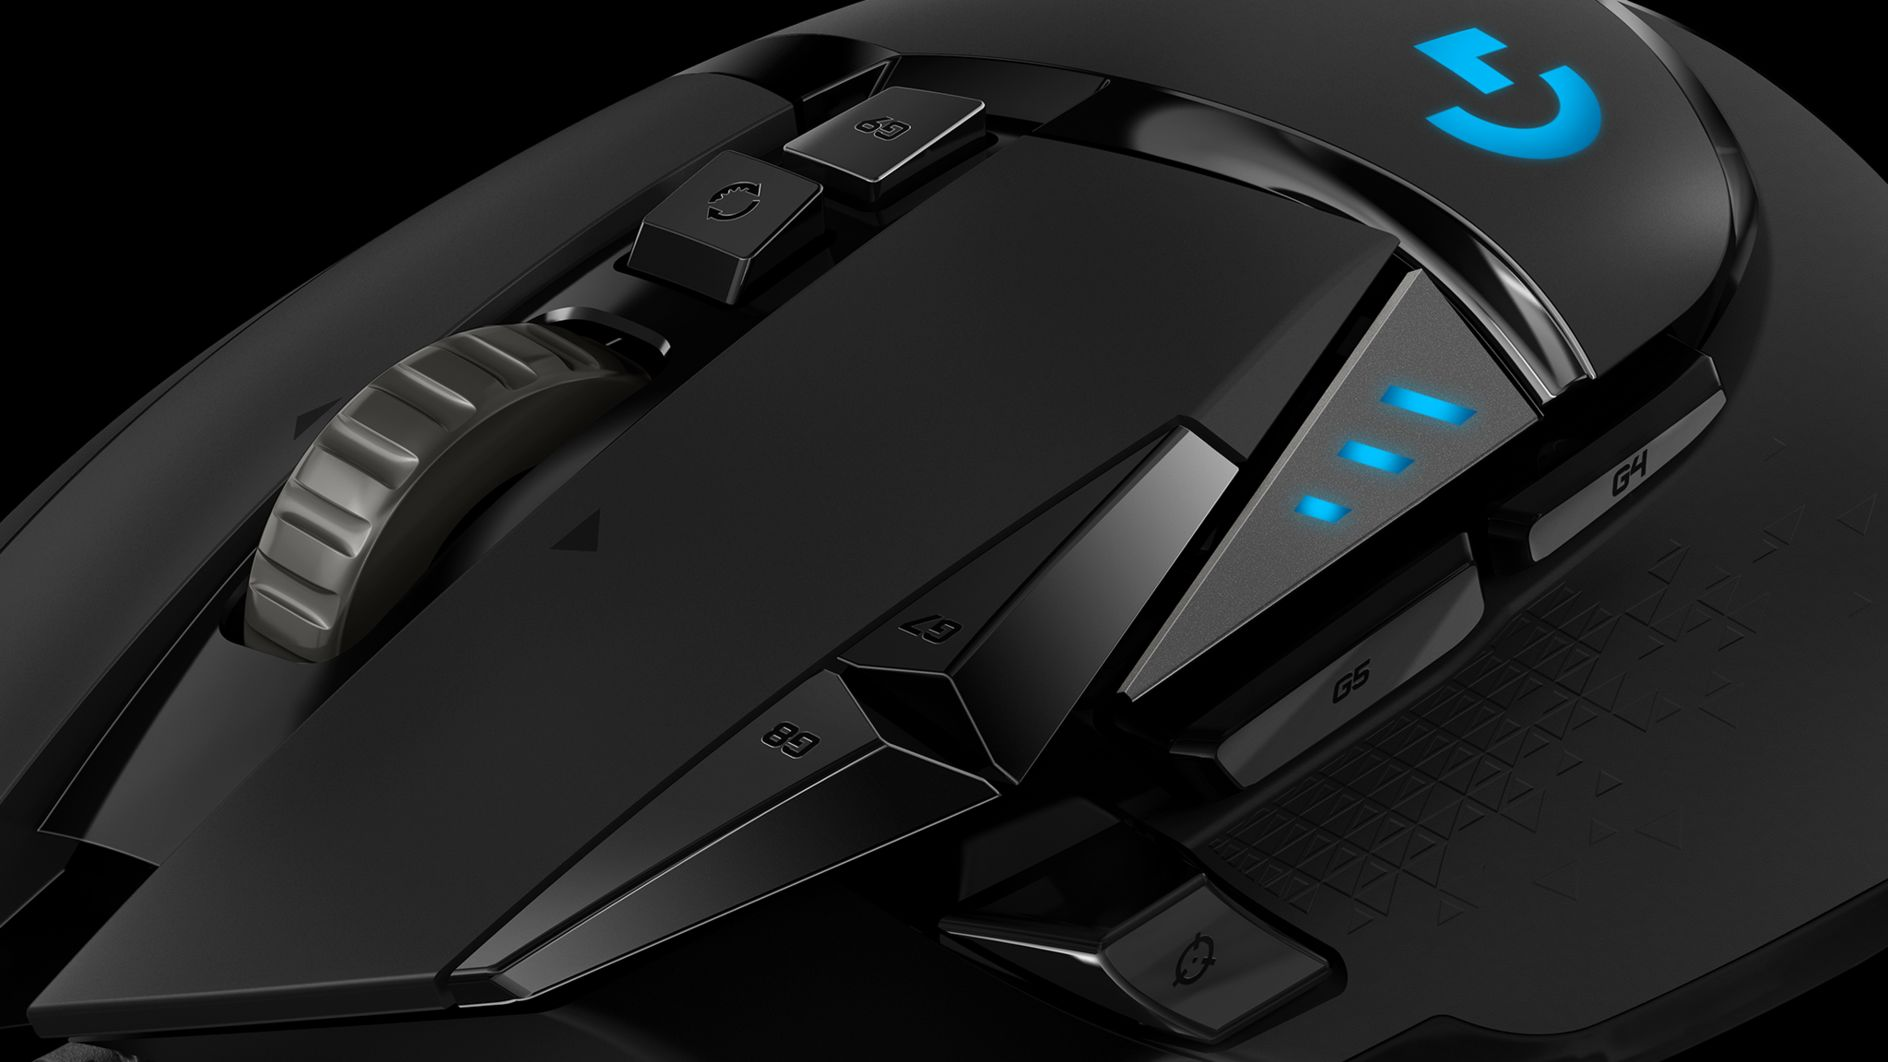 The Logitech G502 WeightWeight